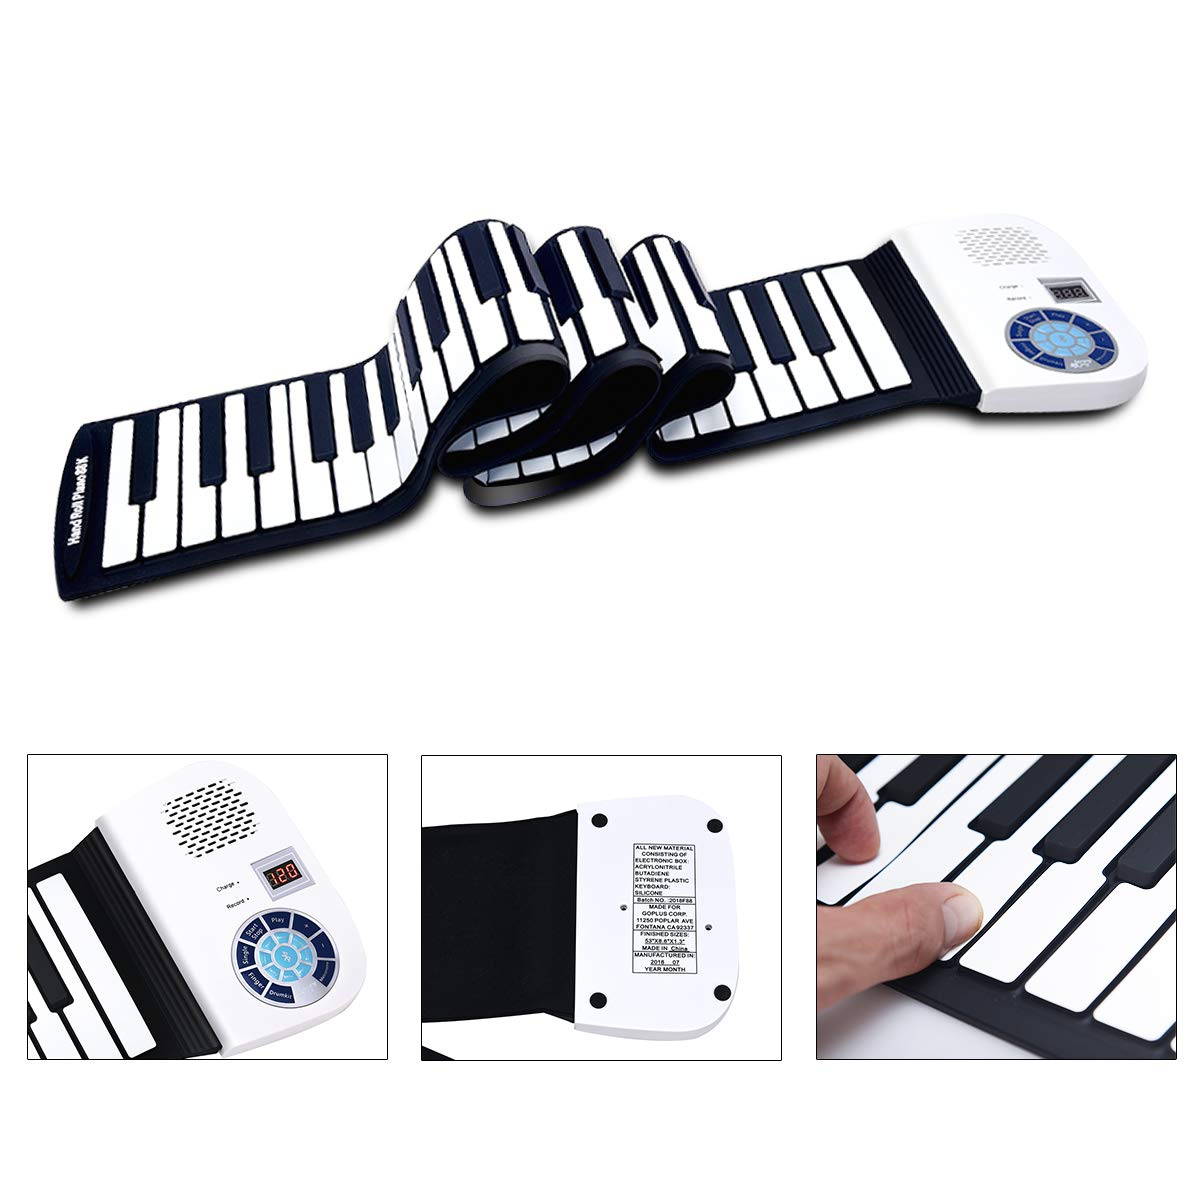 BABY JOY Roll Up Piano, Upgraded Electronic Piano Keyboard, Portable Piano w/Bluetooth, MP3 Headphone USB Input, MIDI OUT, 128 Rhythms, Record, Play, Volume Control (White, 88Keys) by BABY JOY (Image #8)